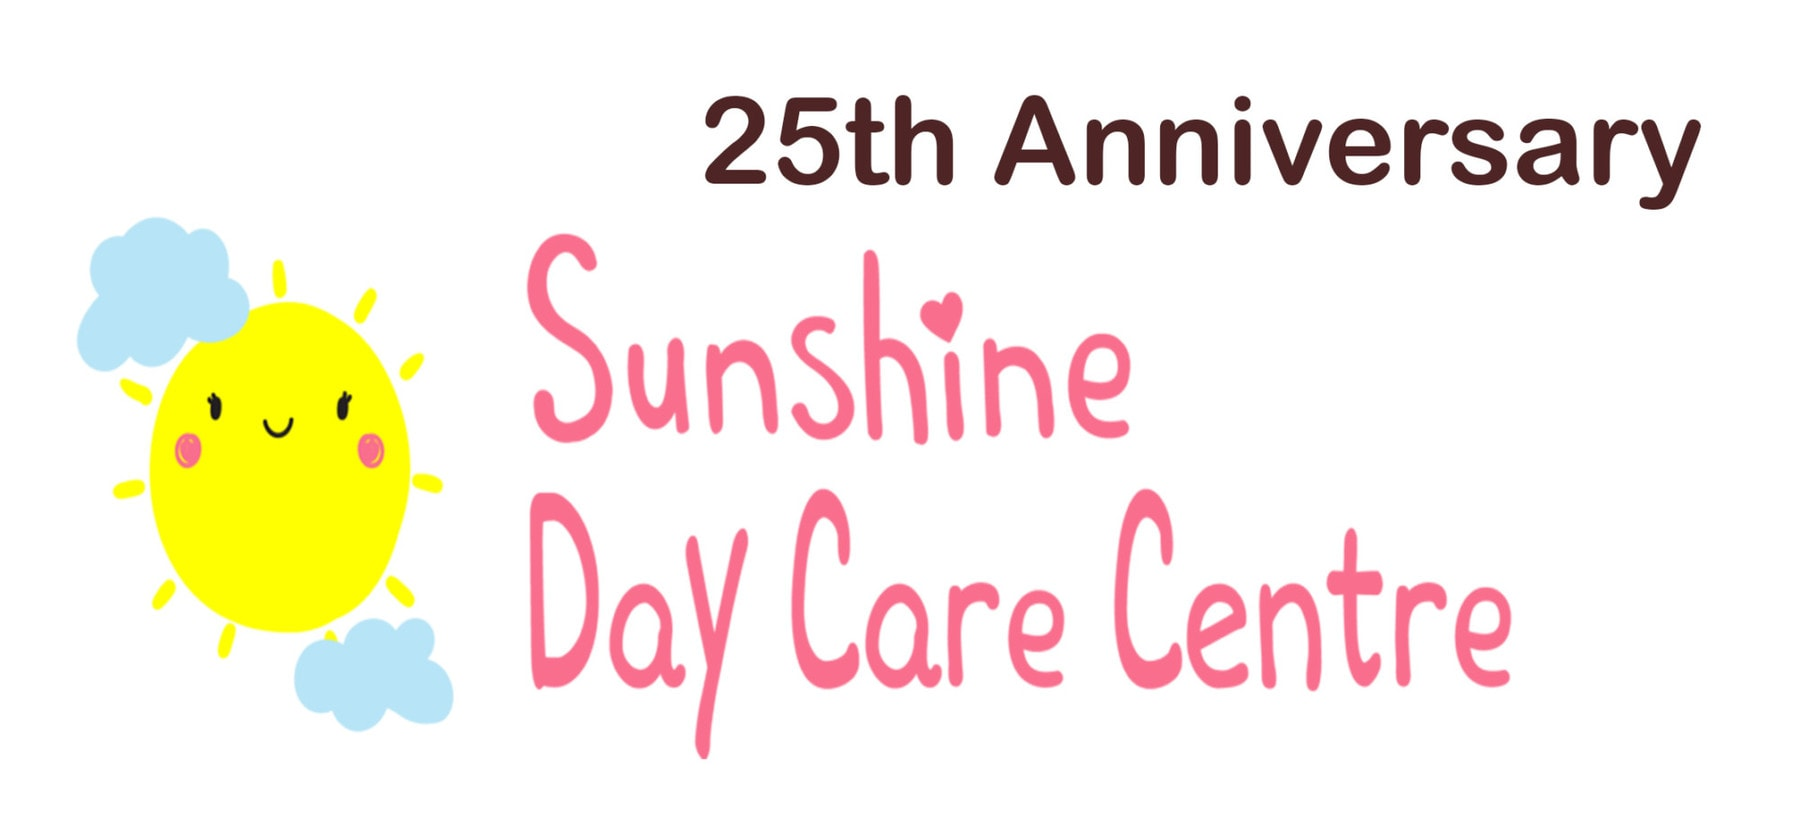 25th Anniversary of Sunshine Day Care Centre